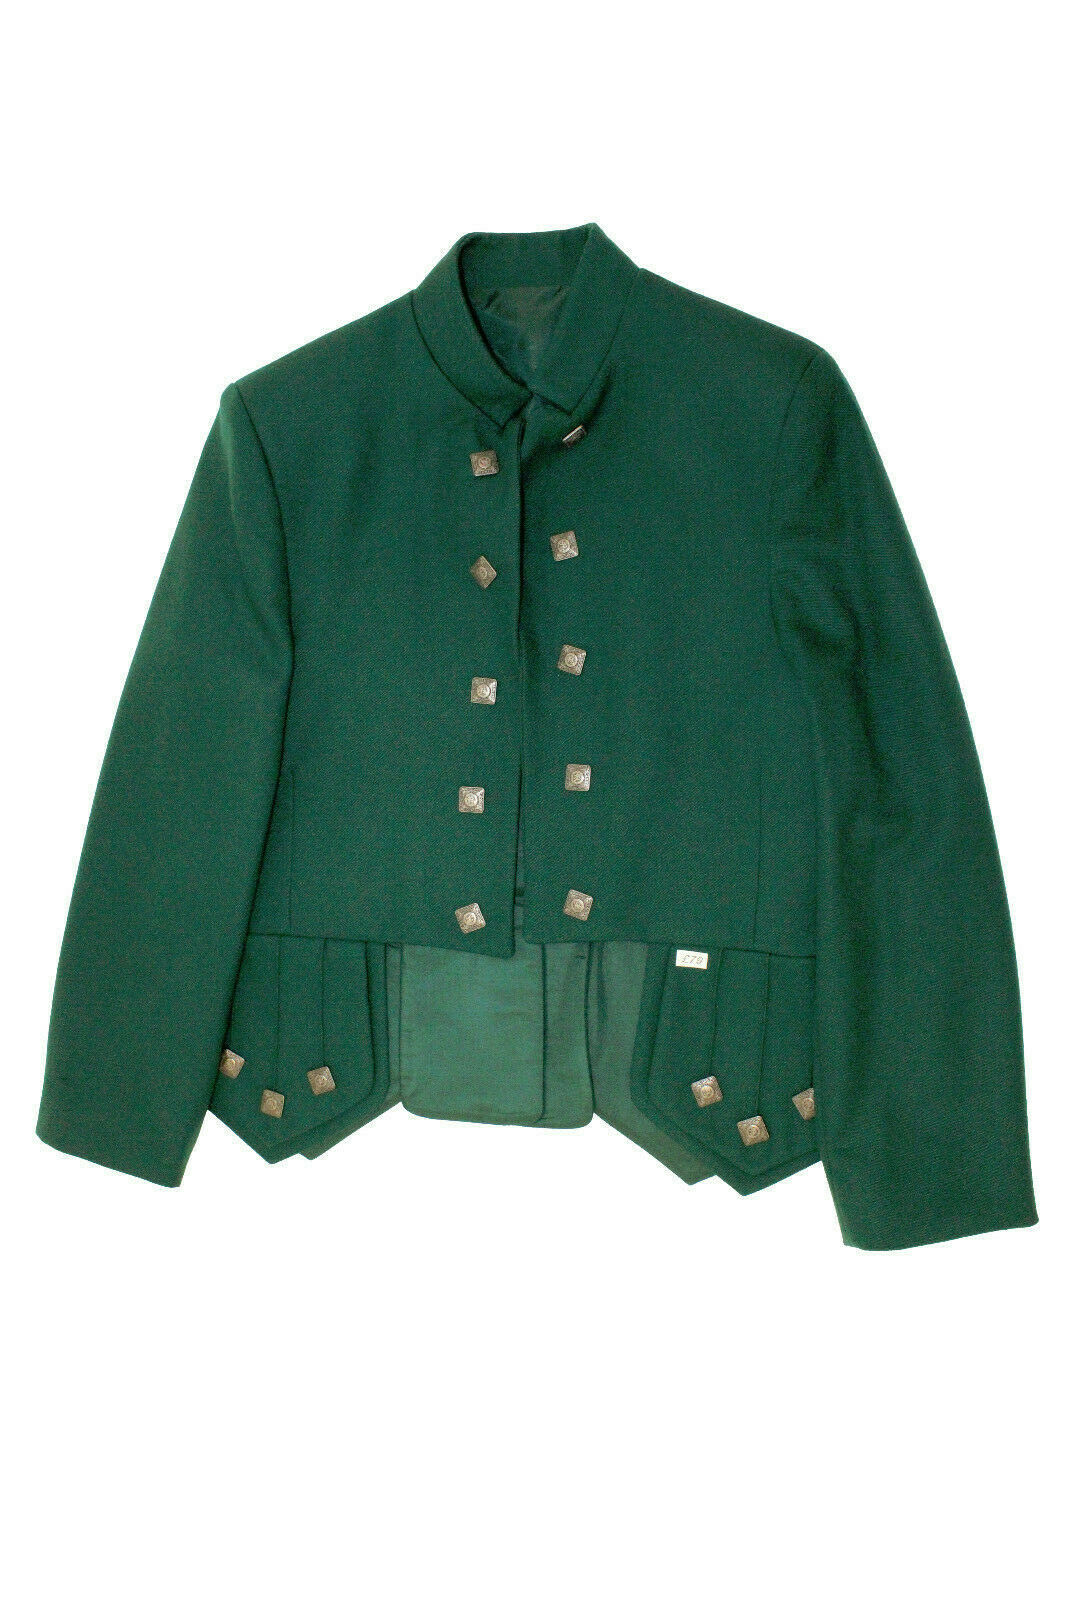 Green Sherriffmuir chrome buttons Kilt Jacket & Vest - reduced to clear